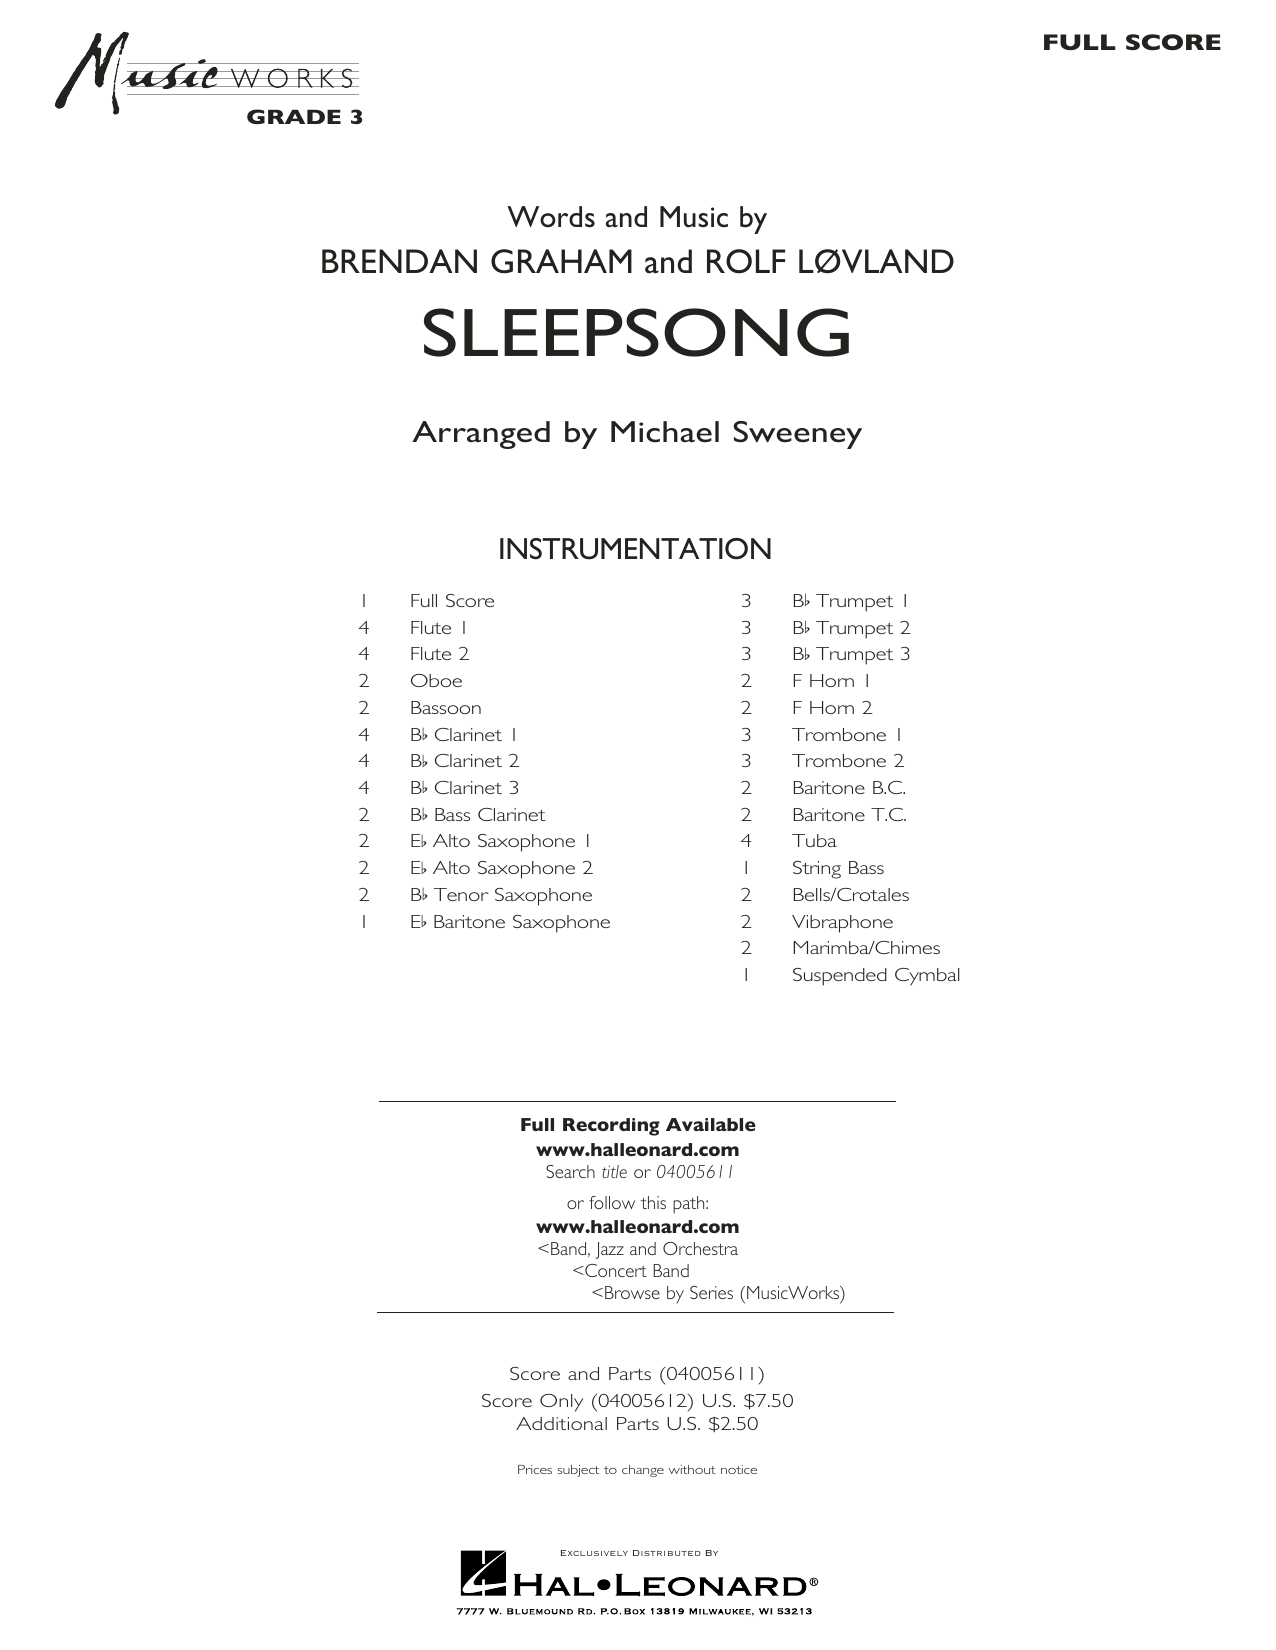 Secret Garden Sleepsong (arr. Michael Sweeney) - Conductor Score (Full Score) sheet music preview music notes and score for Concert Band including 20 page(s)